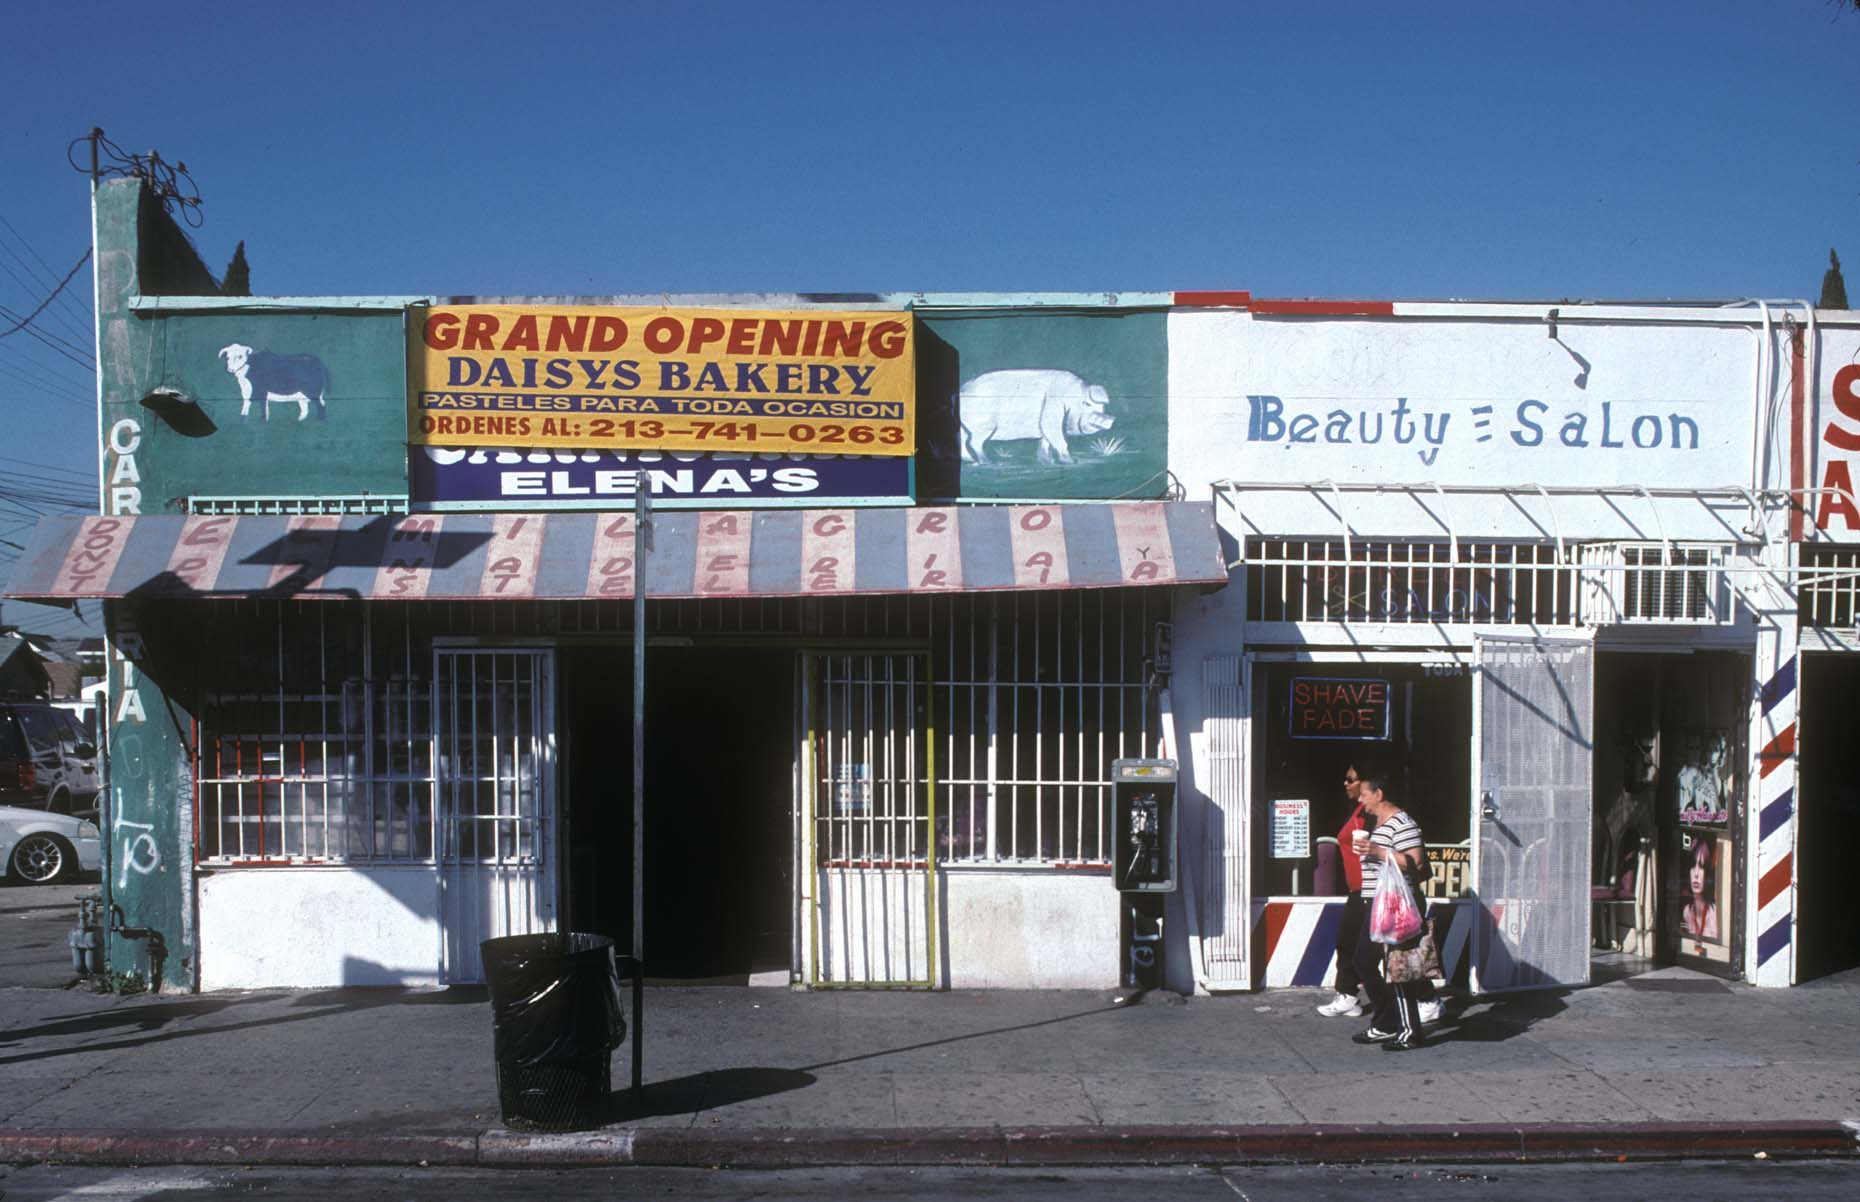 07_S Central Avenue at 22nd St, LA, 2005-DUP4.jpg